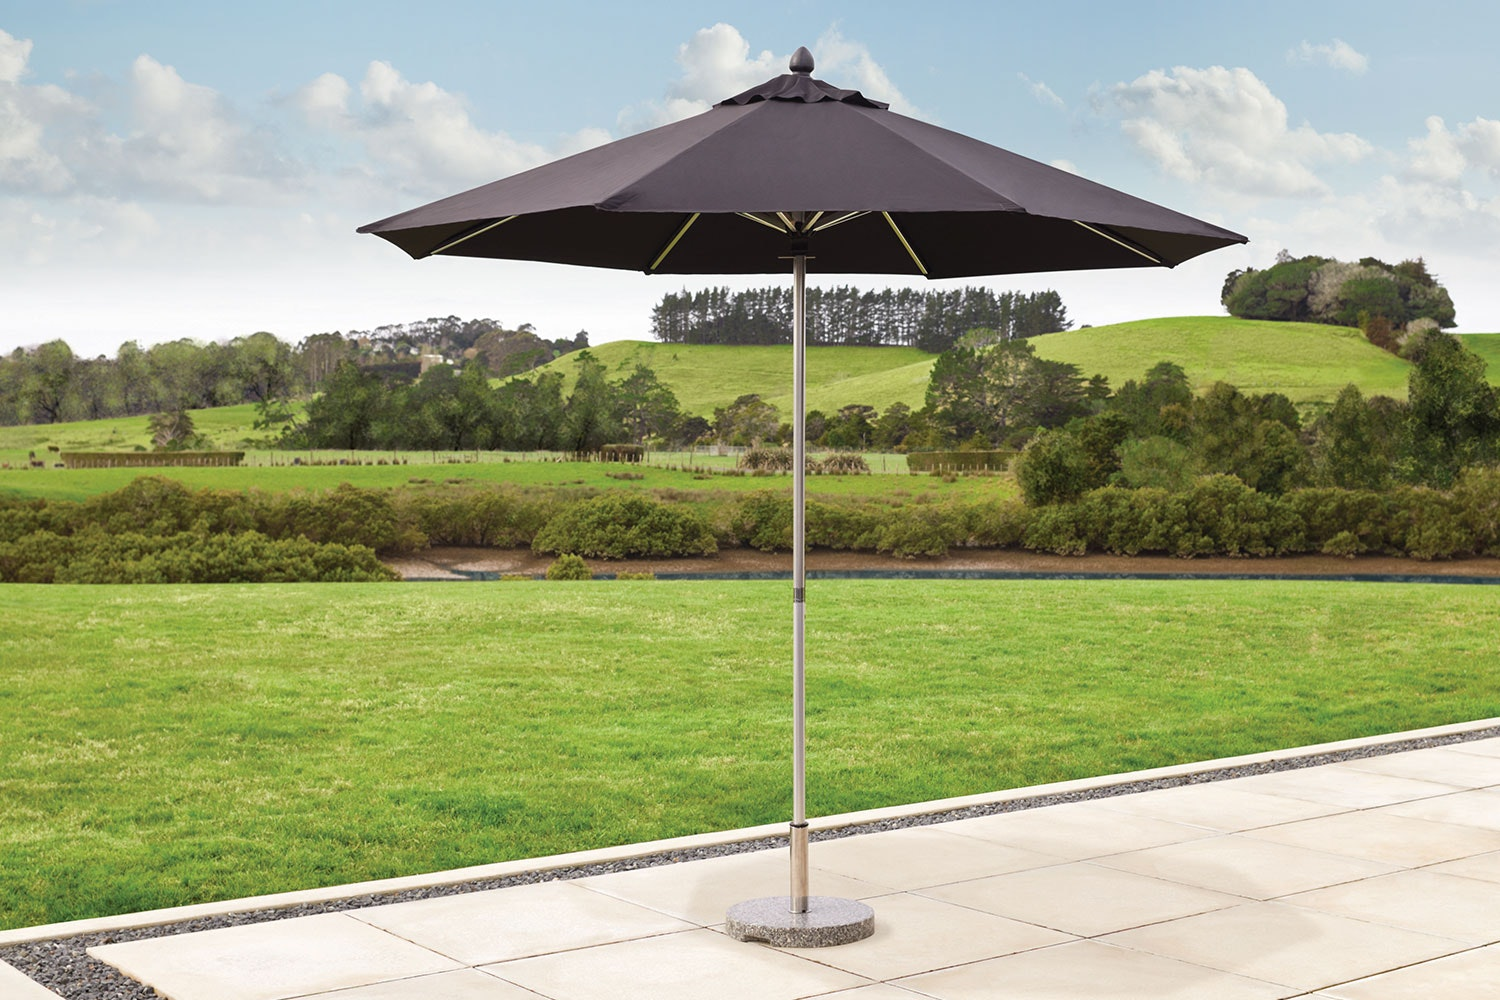 Triton 2.7m Black Outdoor Umbrella with 25kg Granite Base by Preos